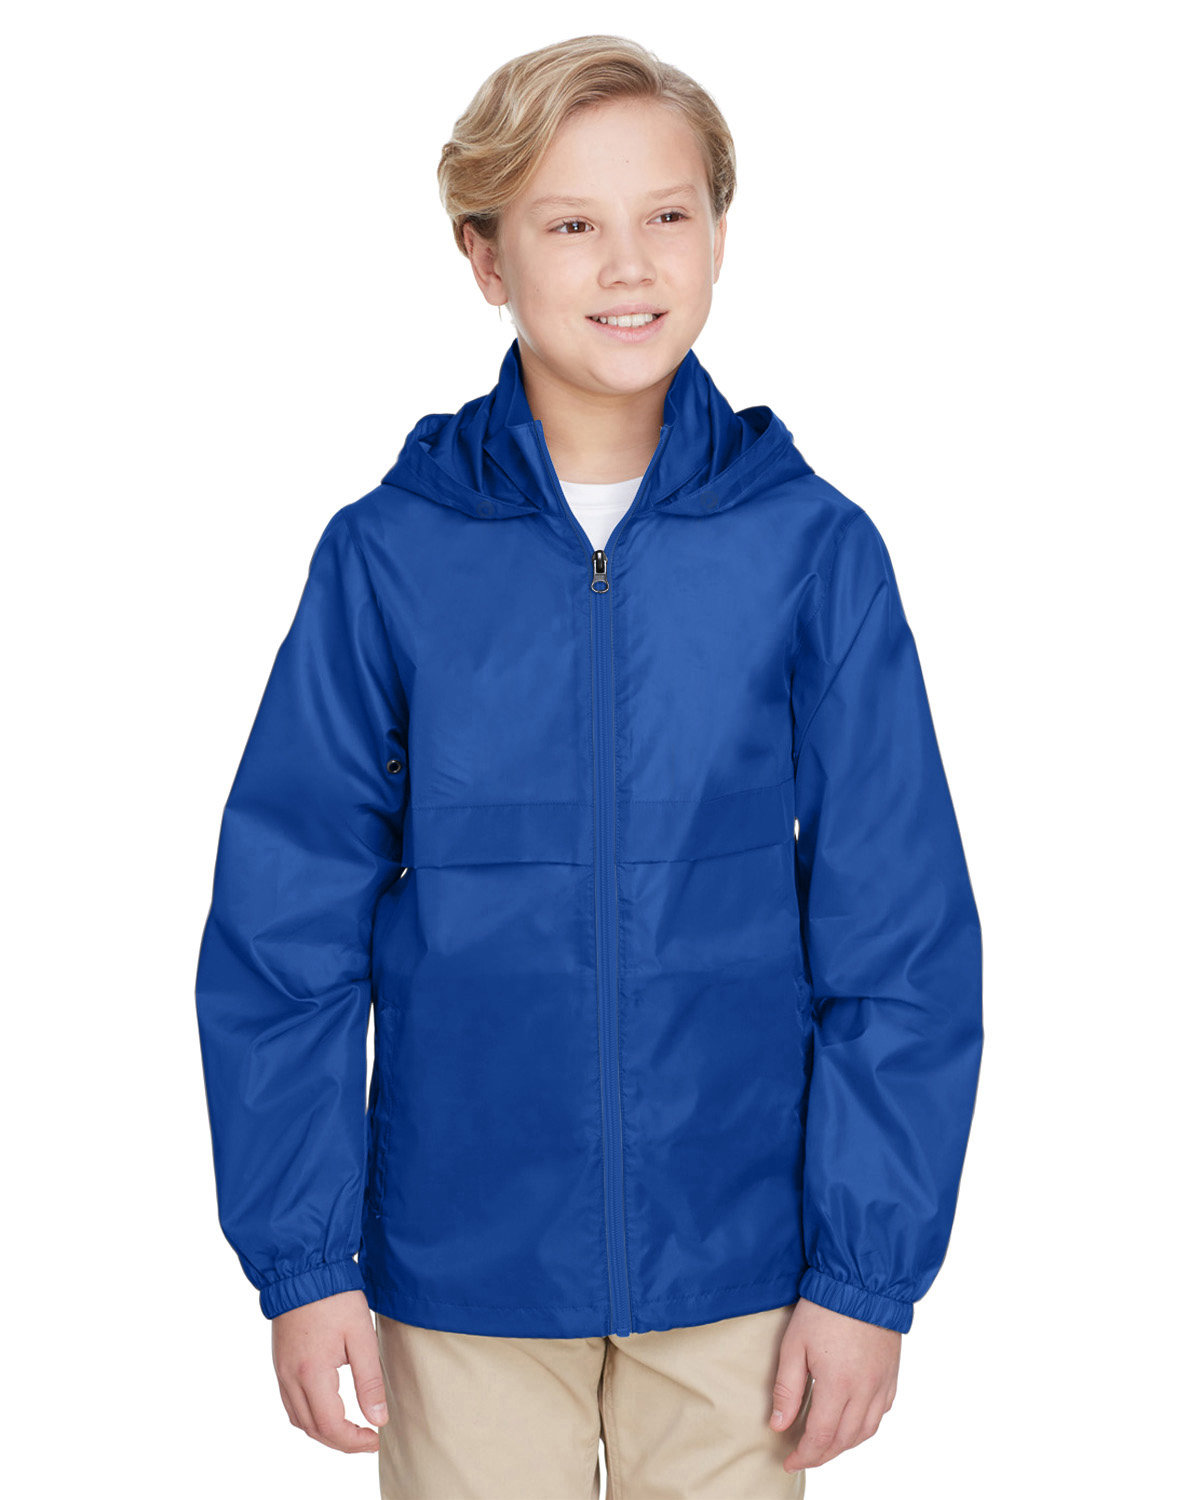 Team 365 Youth Zone Protect Lightweight Jacket SPORT ROYAL